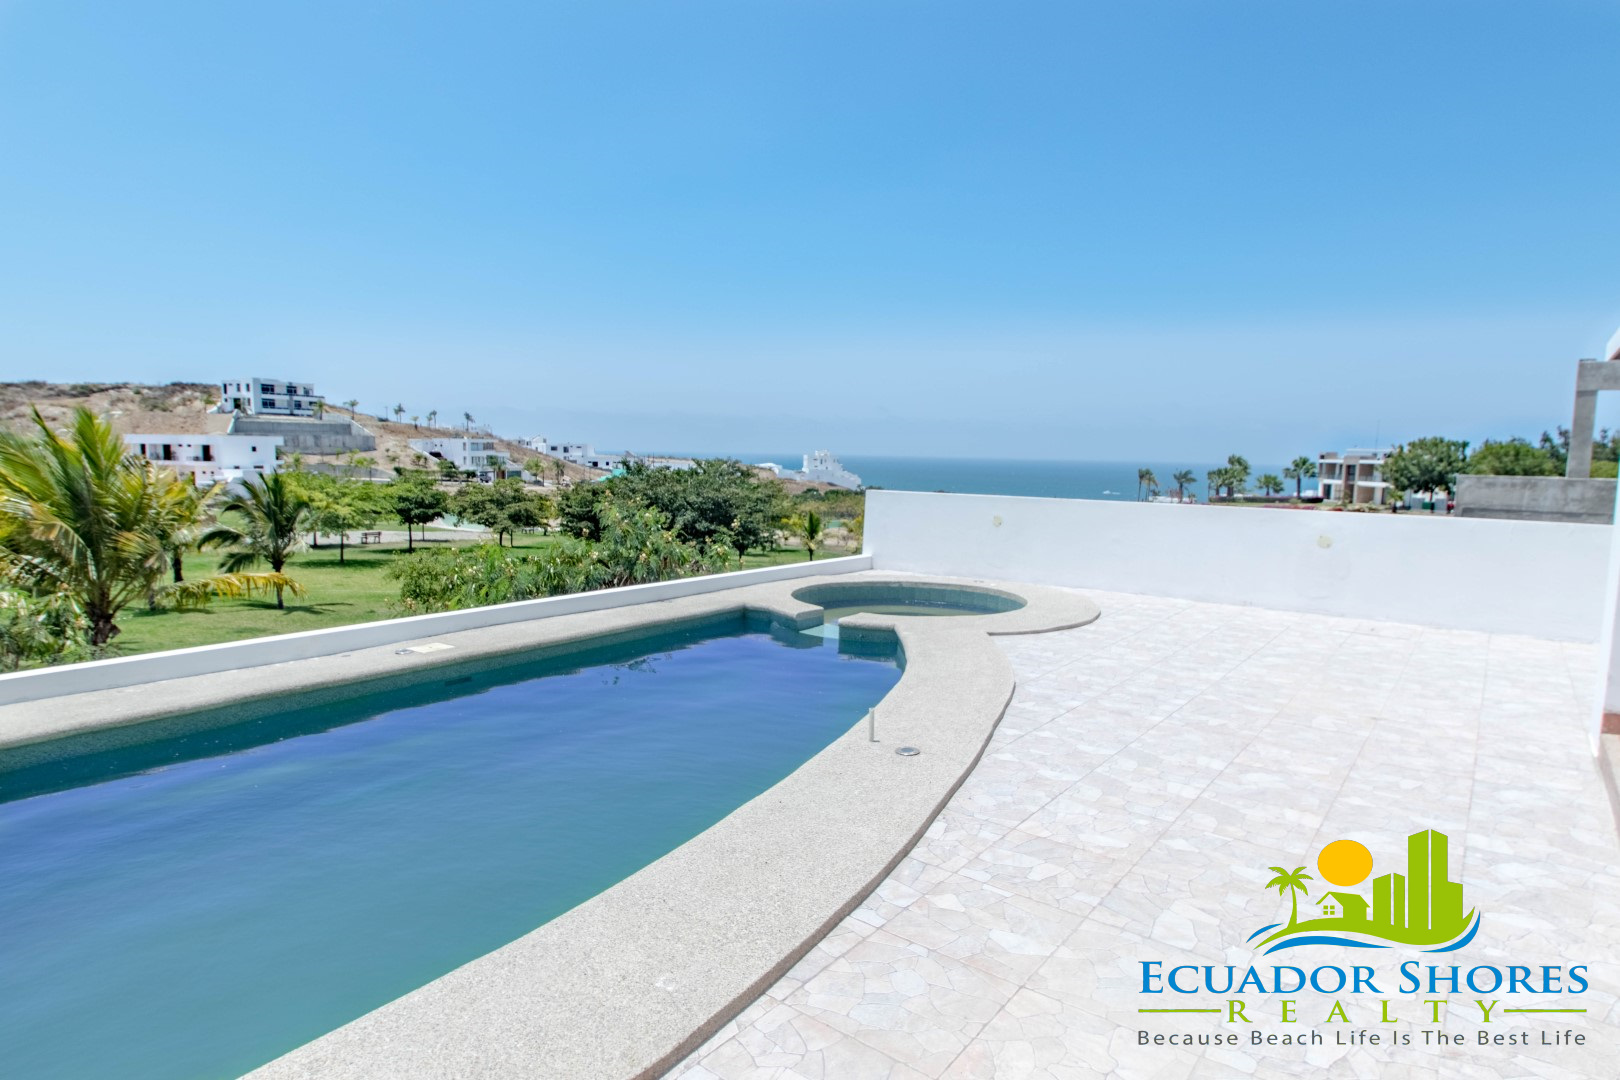 Pool home Manta Ecuador! New construction!